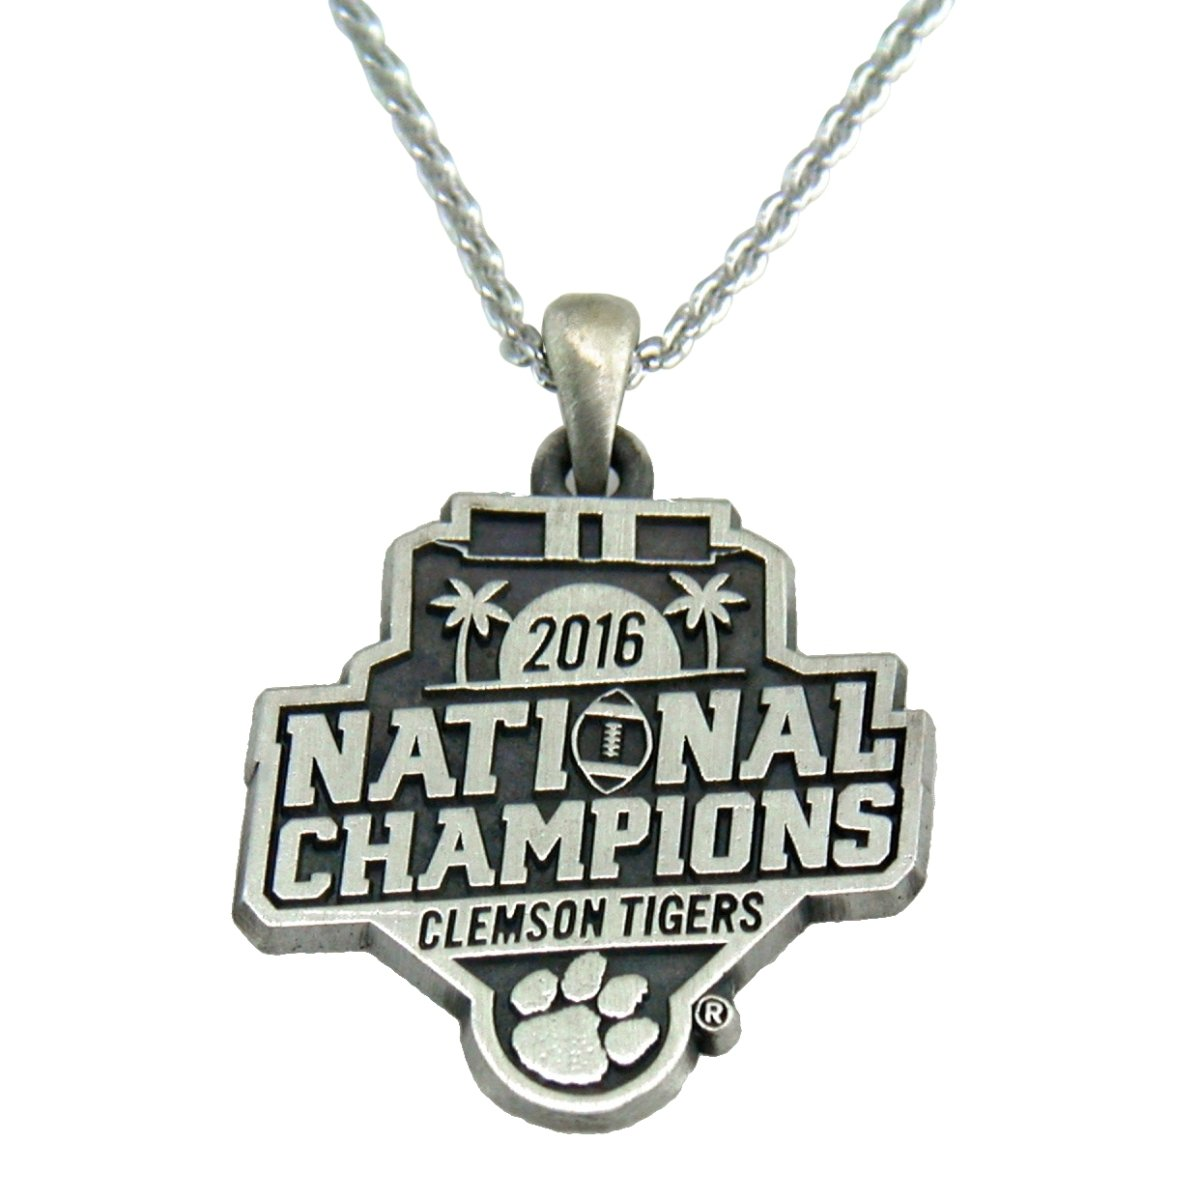 Argent Sport Clemson Tigers 2016 National Champions Gold Tone Charm Necklace - Mr. Knickerbocker